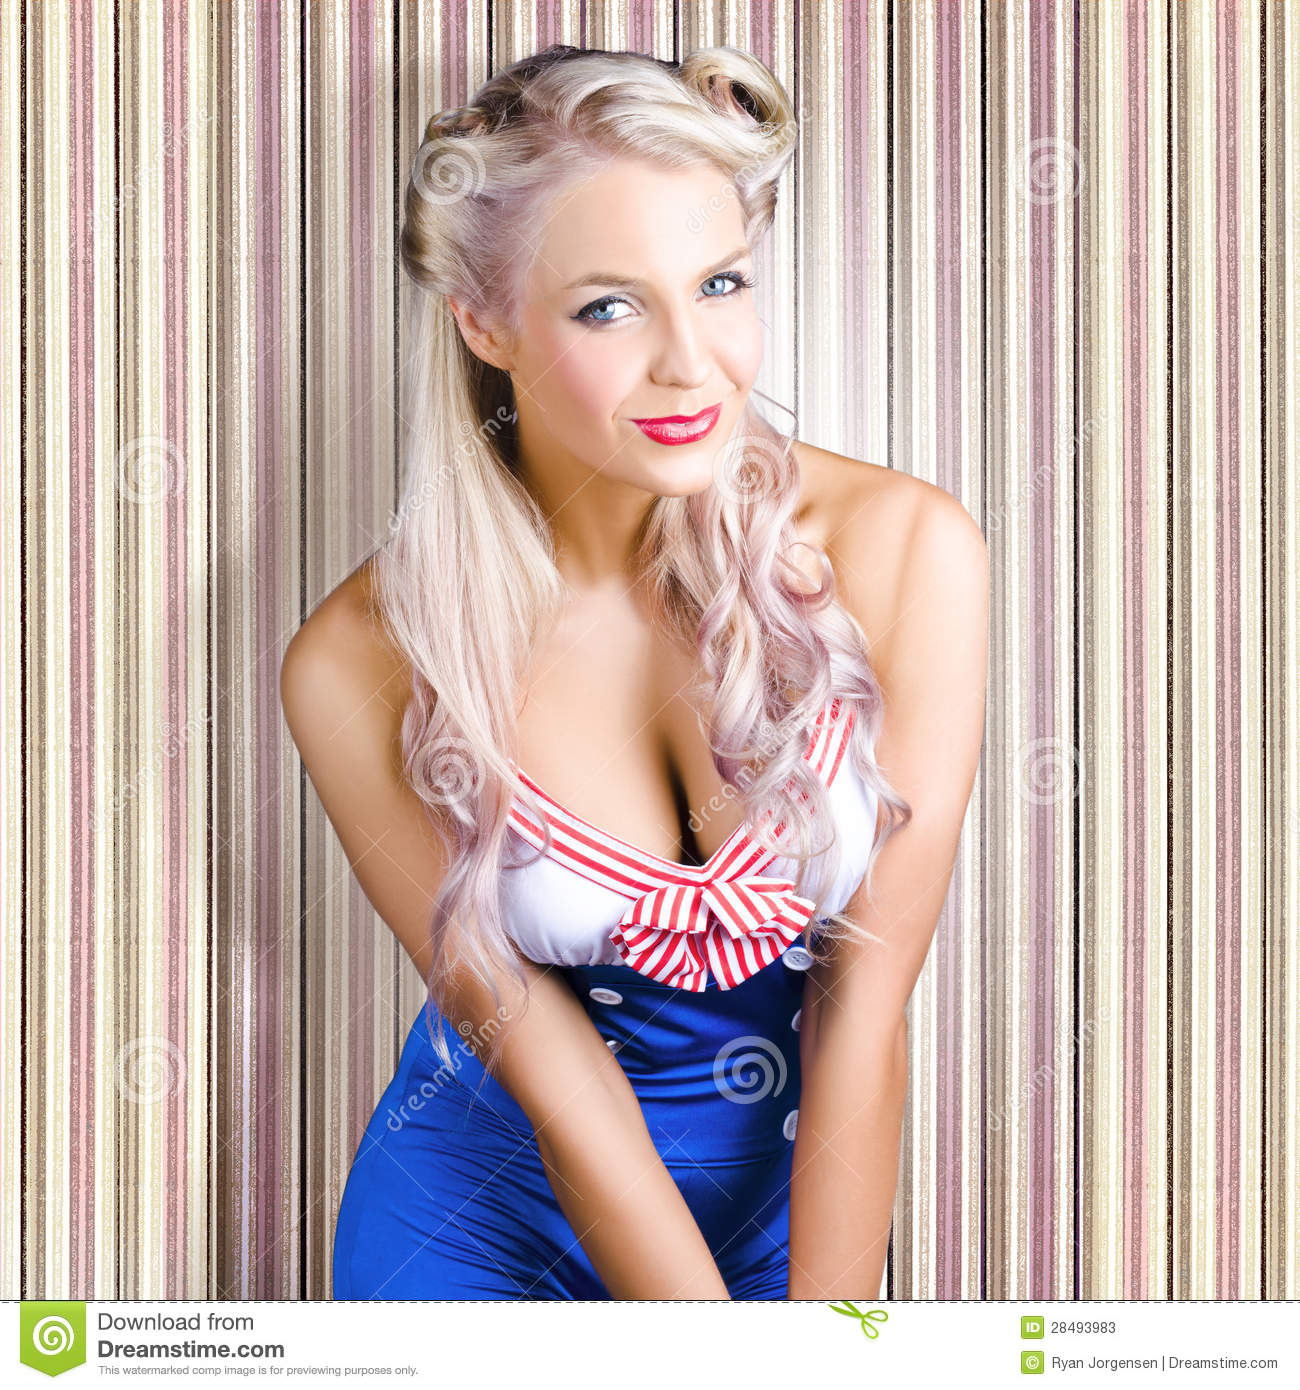 Cute Blonde Pin-Up Girl With Cheeky Smile Stock Photos ...